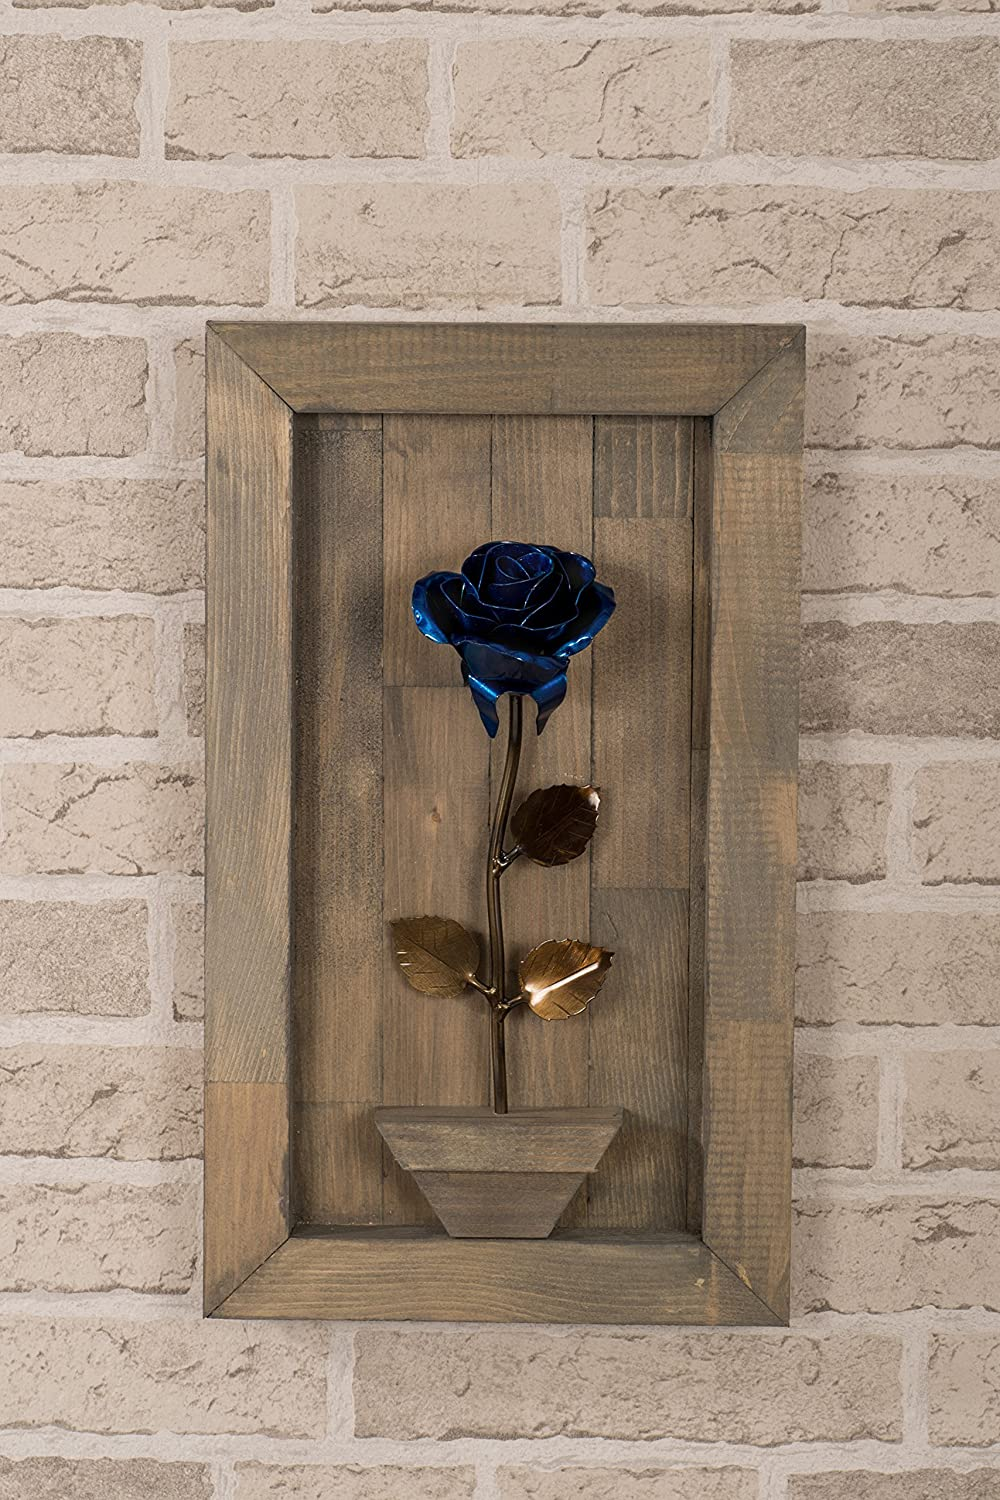 Hand Forged Wrought Iron Blue Metal Rose with Wood Hanging